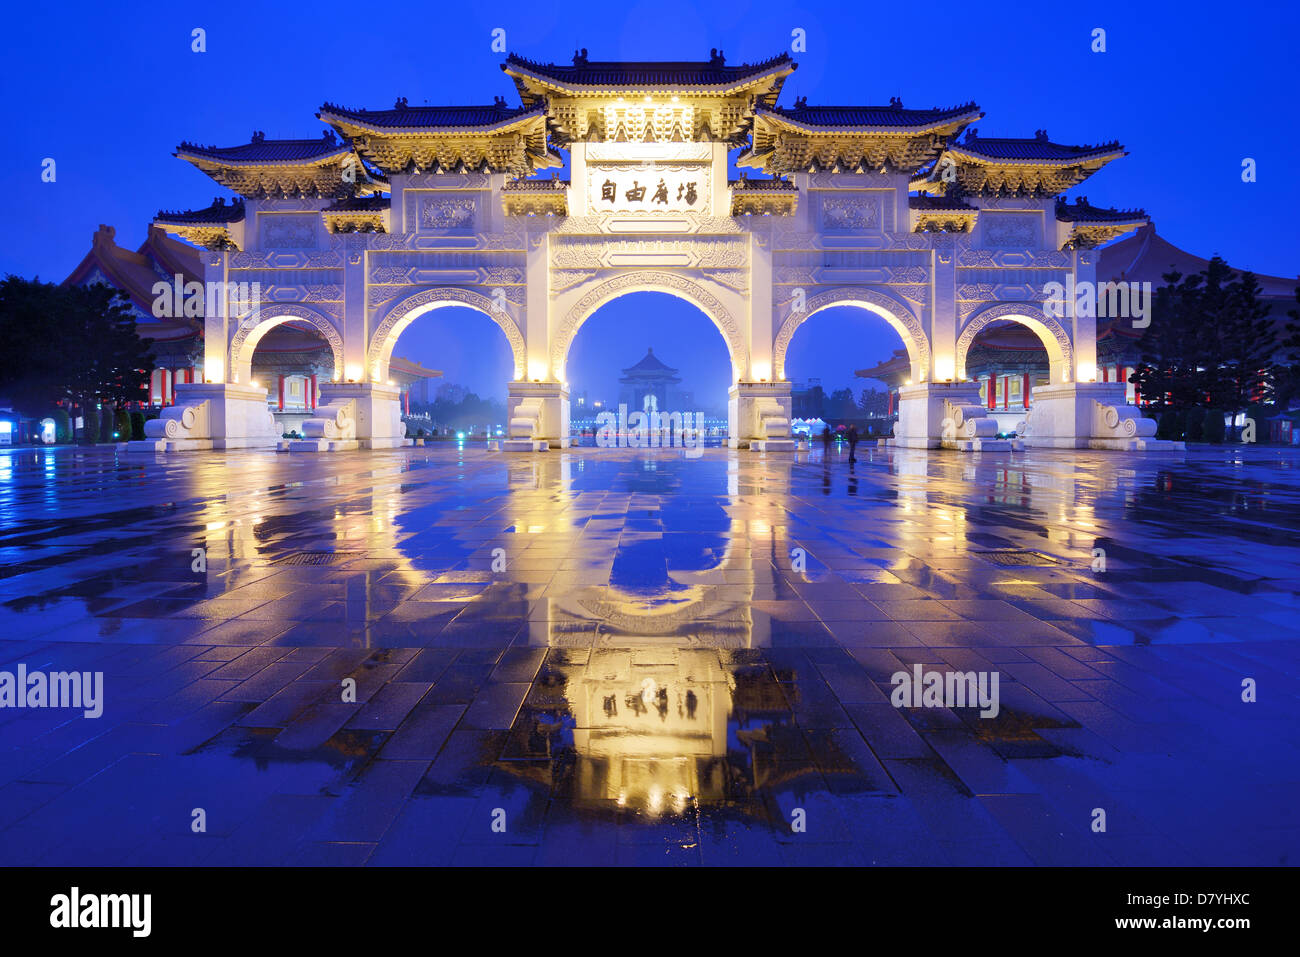 Arches at Liberty Square in Taipei, Taiwan. - Stock Image